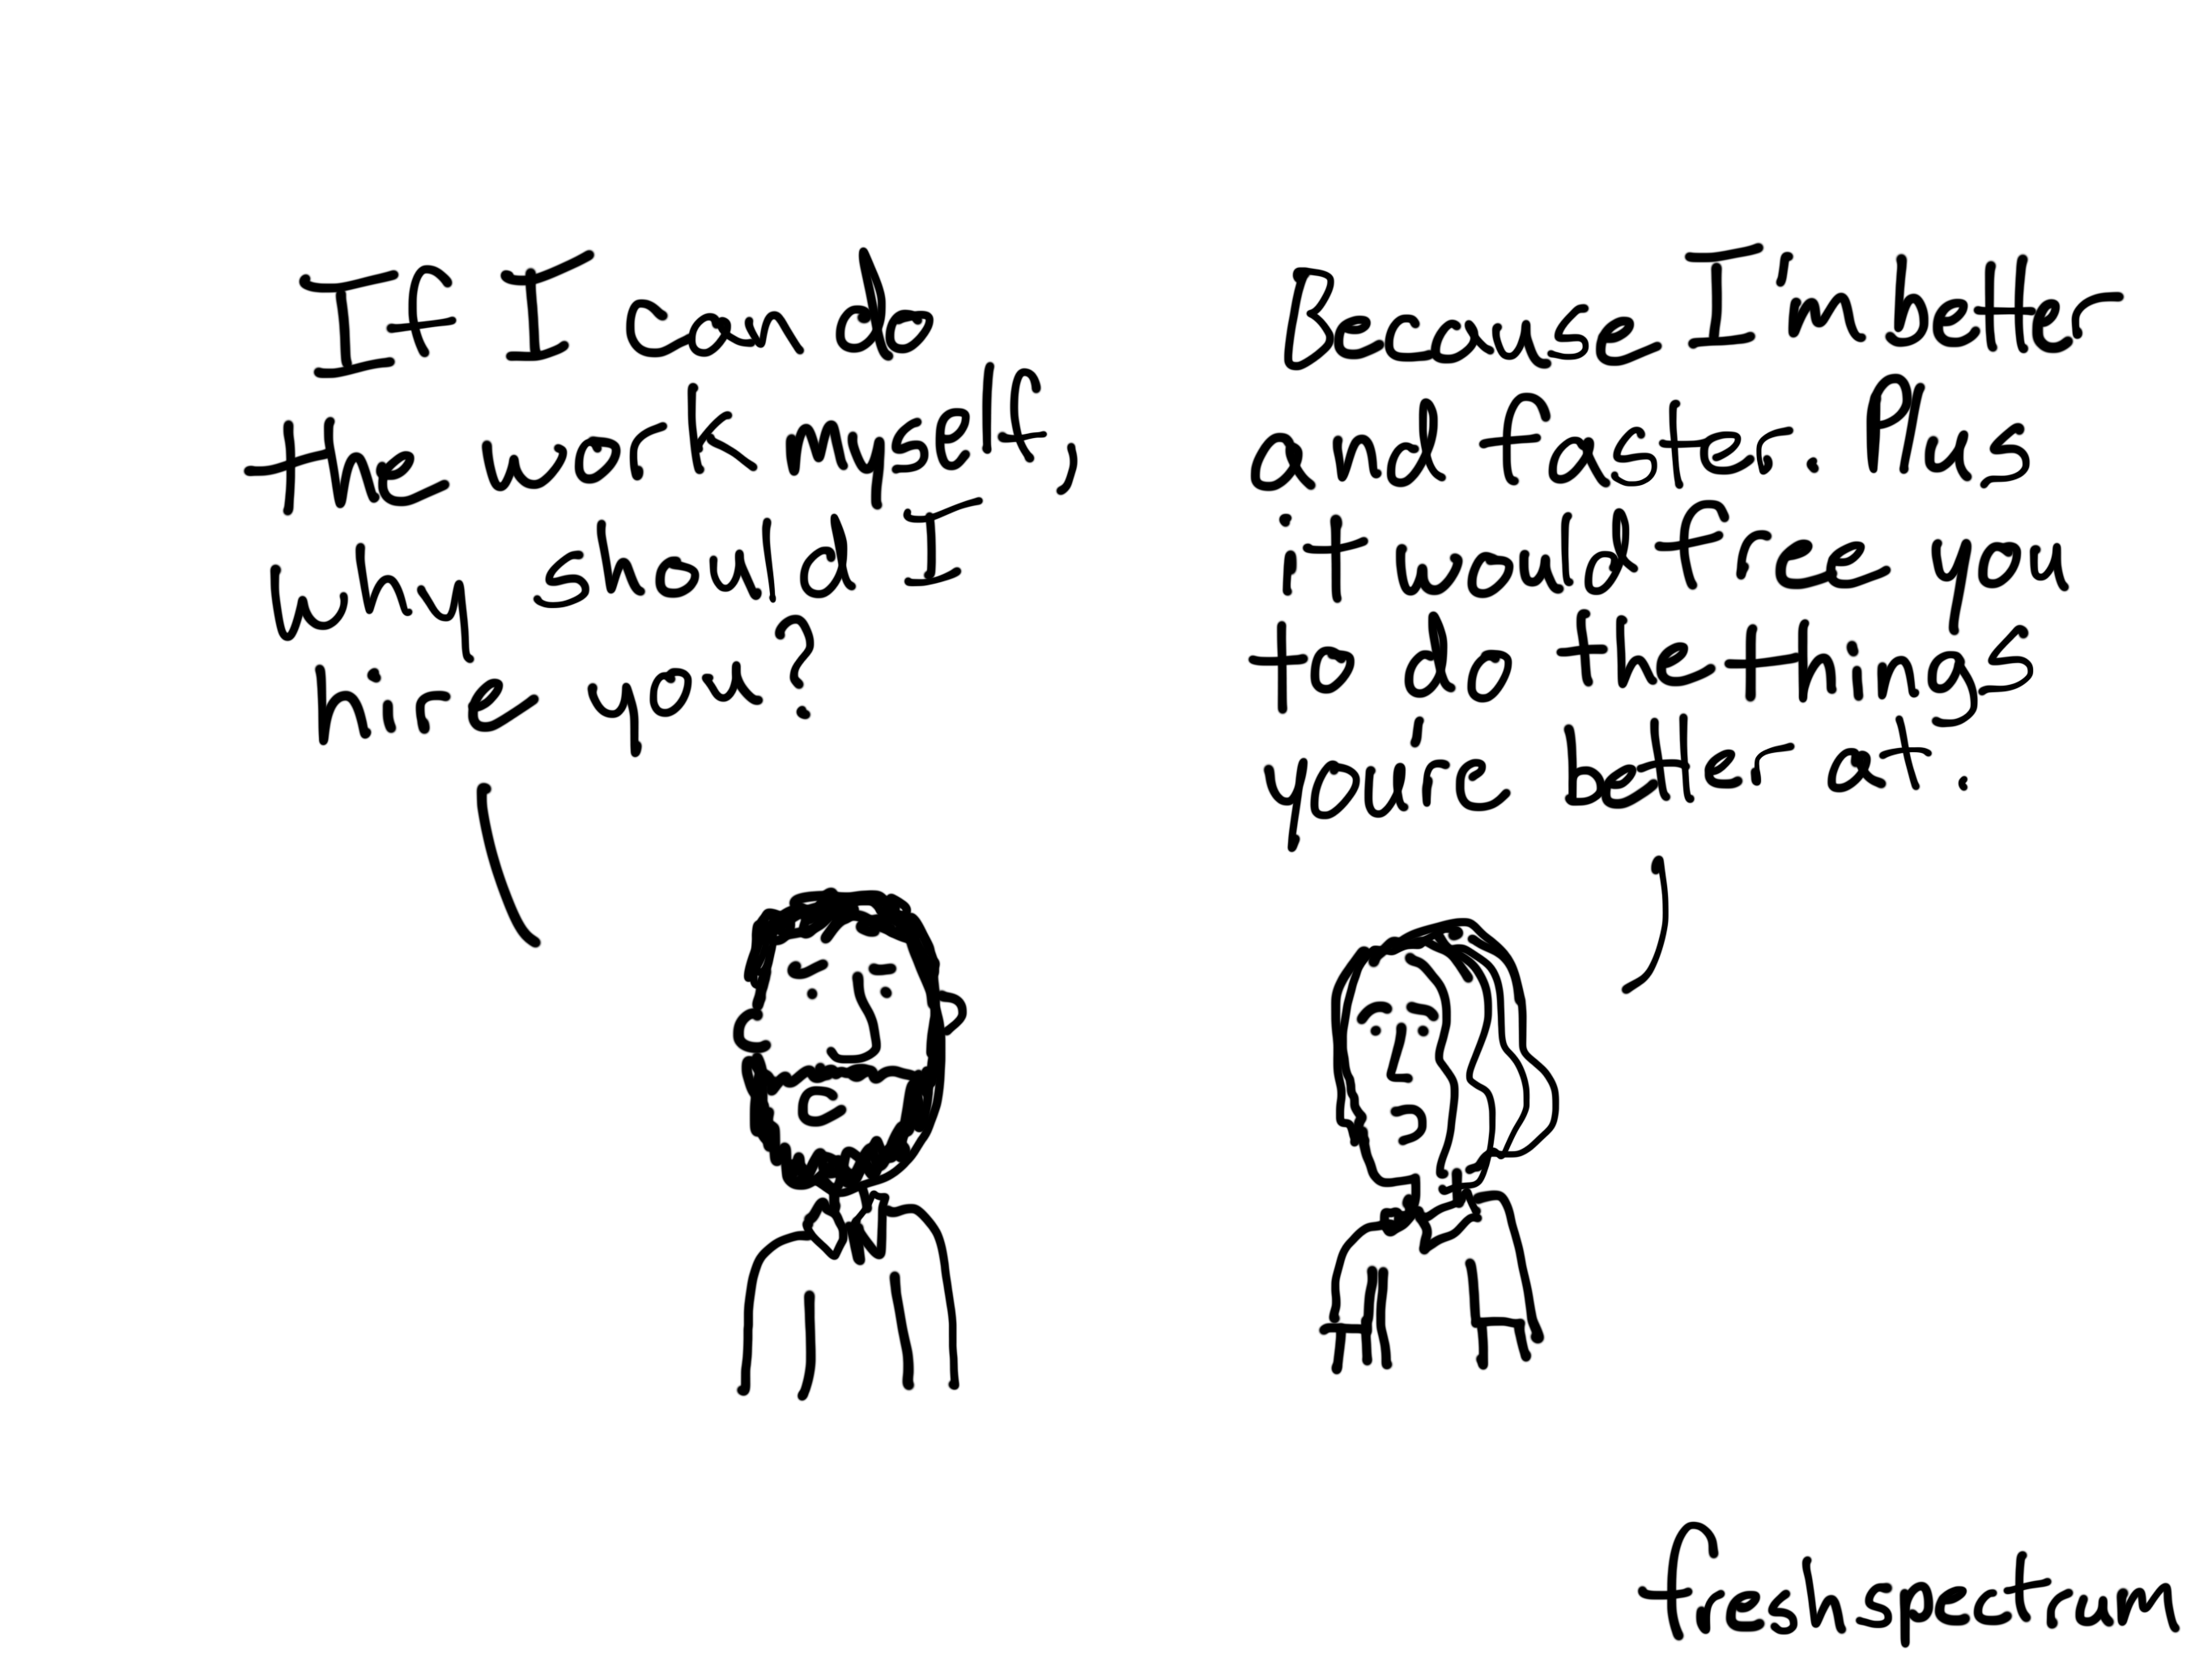 Freshspectrum Better and Faster Freelancer Cartoon